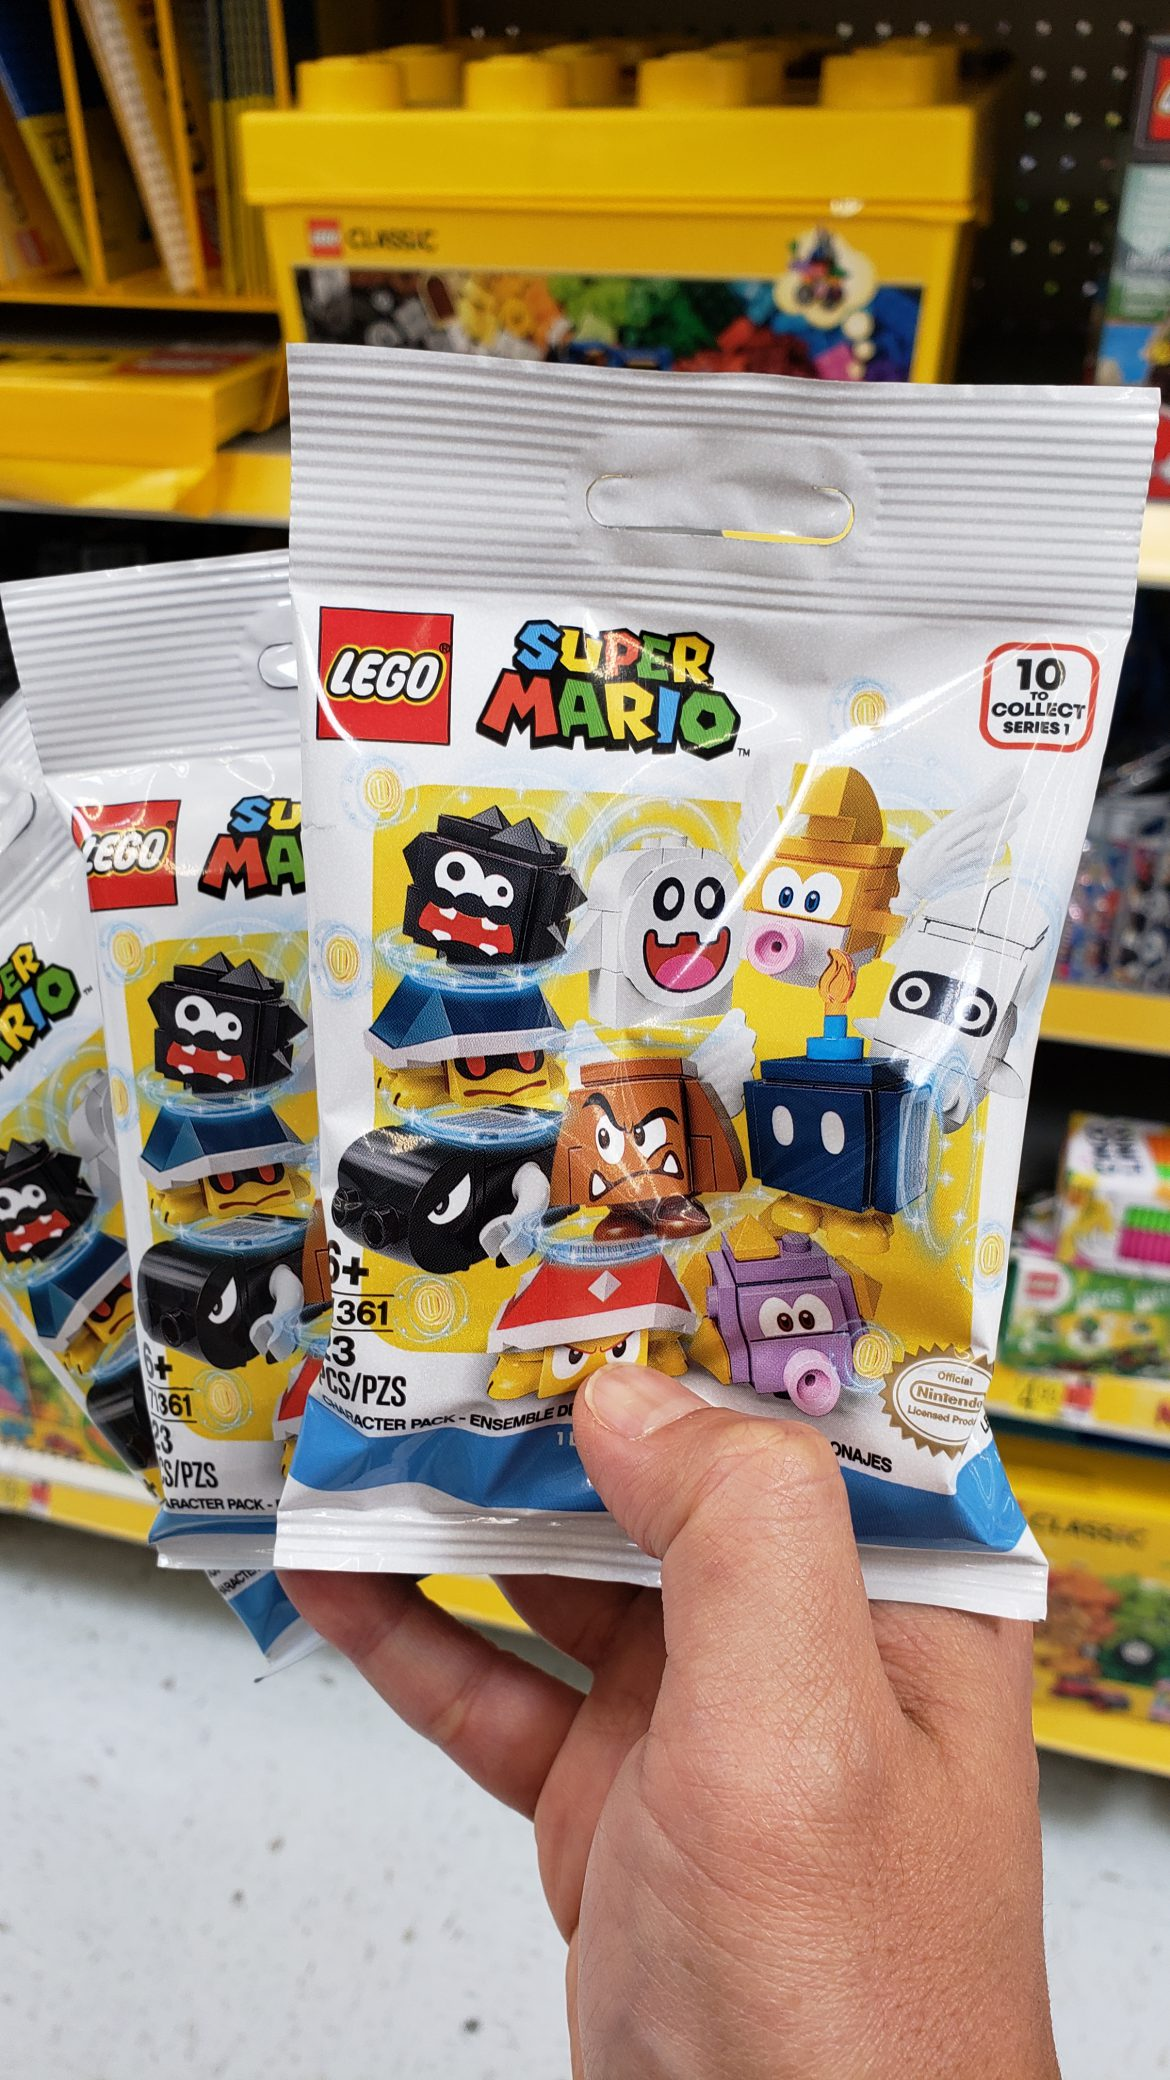 Lego Super Mario Sets Available at Target and Walmart